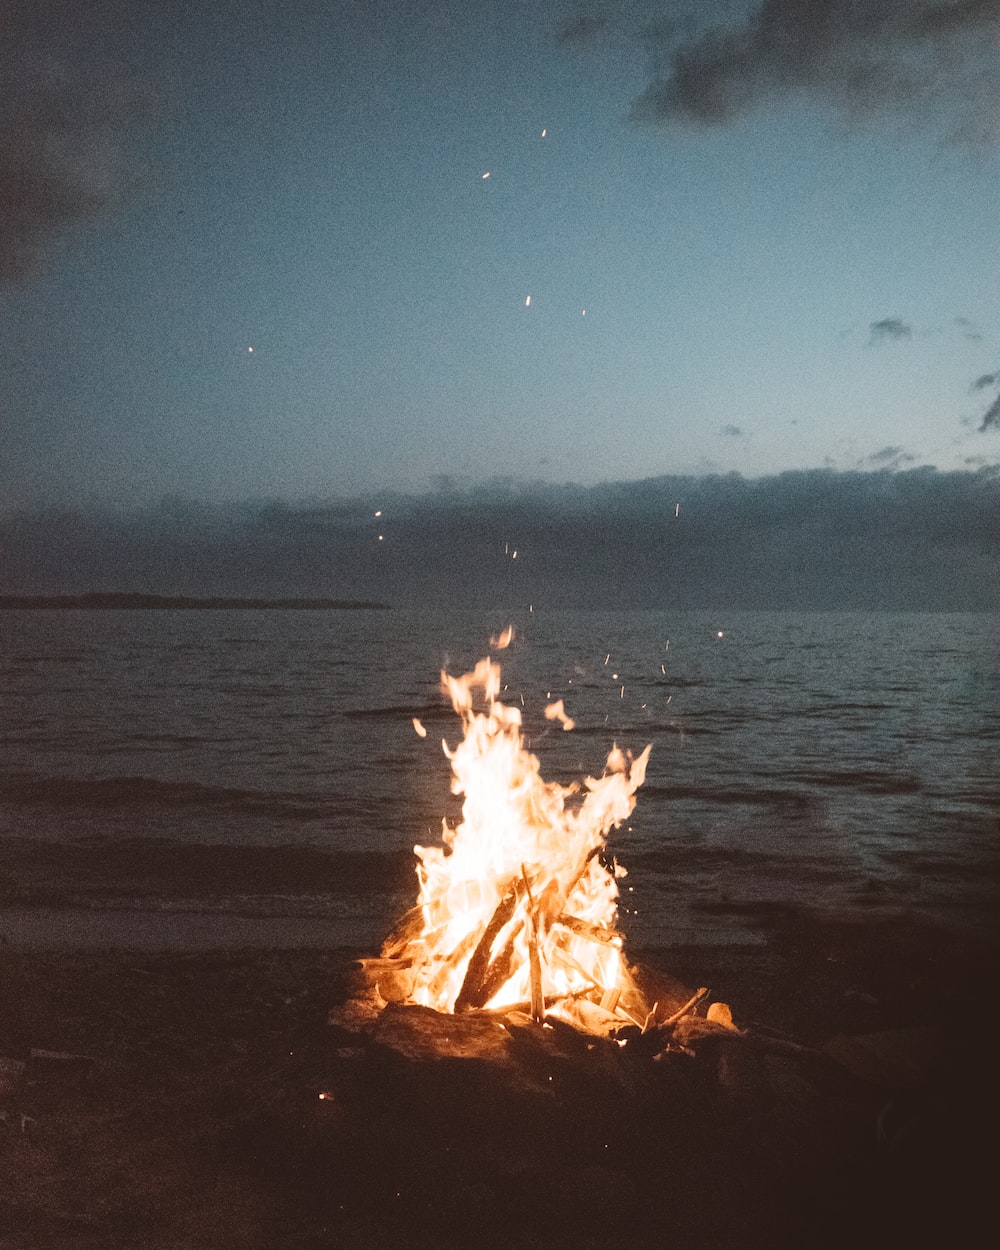 bonfire near seashore during nighttime